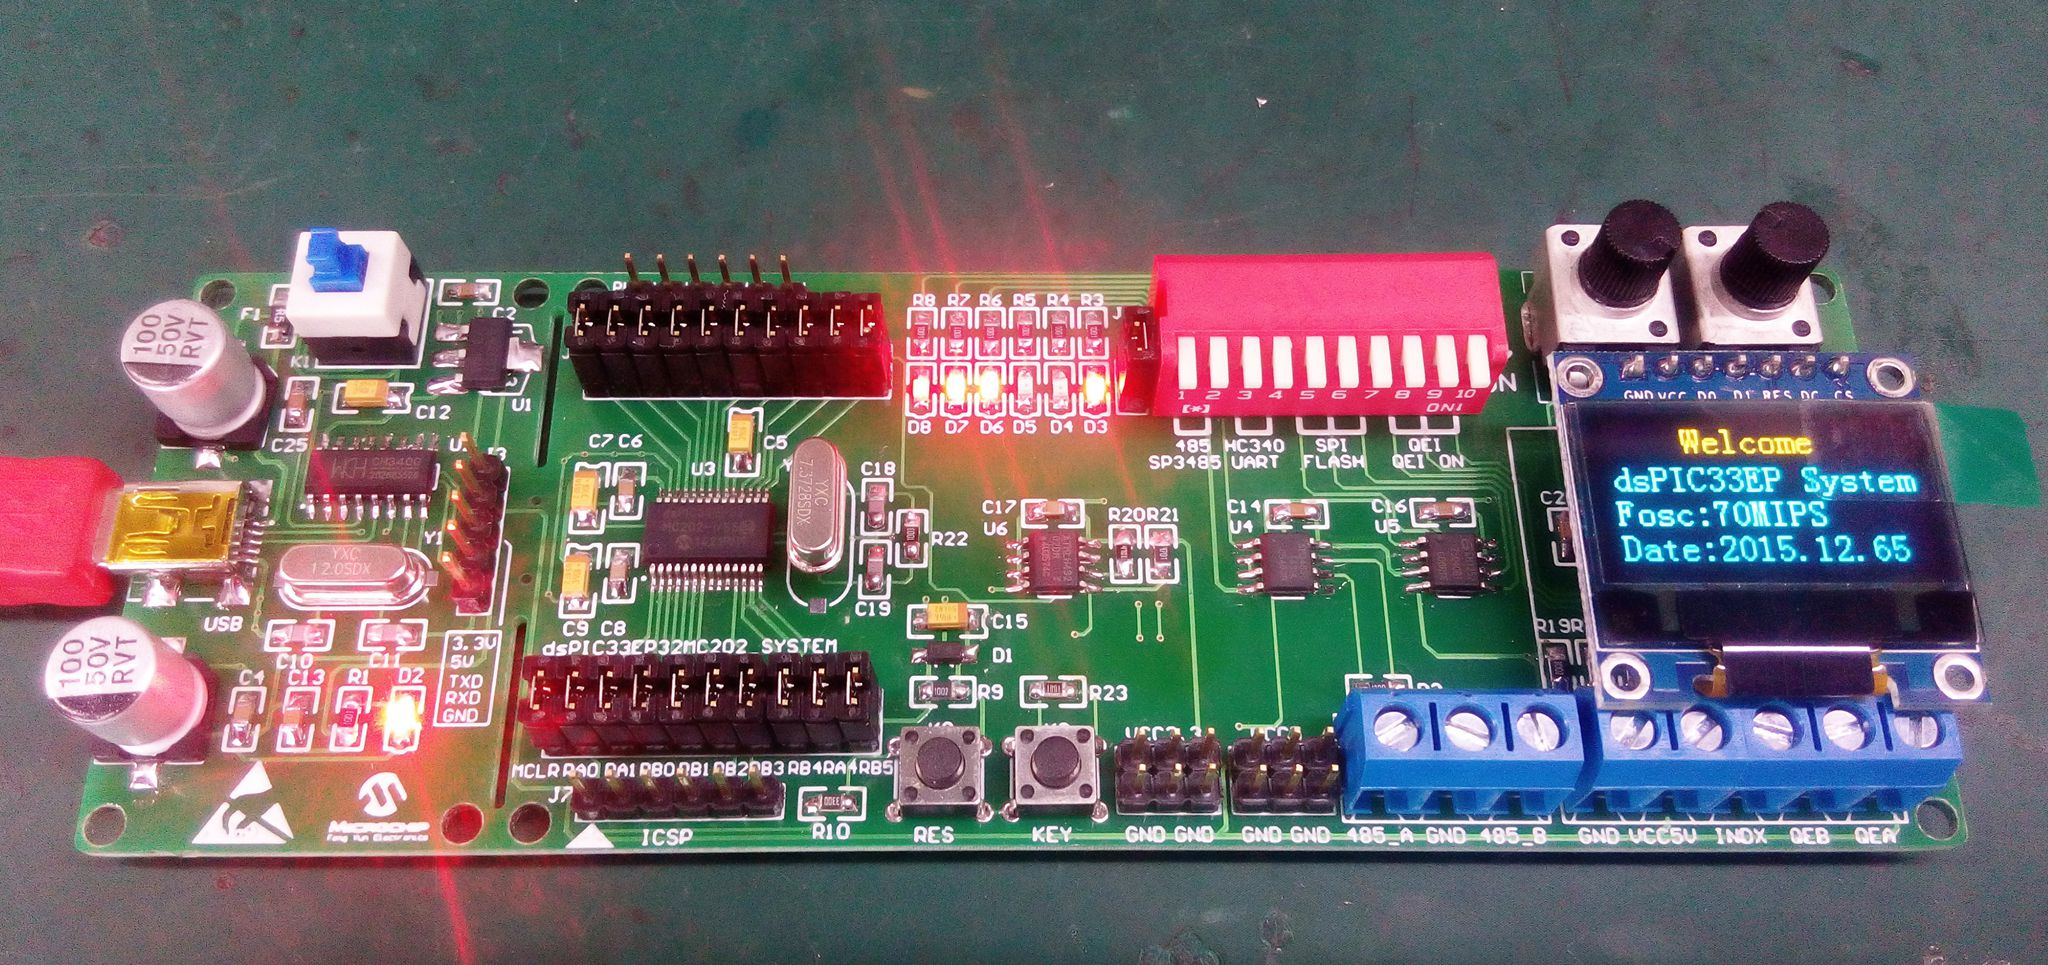 DsPIC development board, dsPIC33EP development board, DSP experimental board, dsPIC33EP series development board board